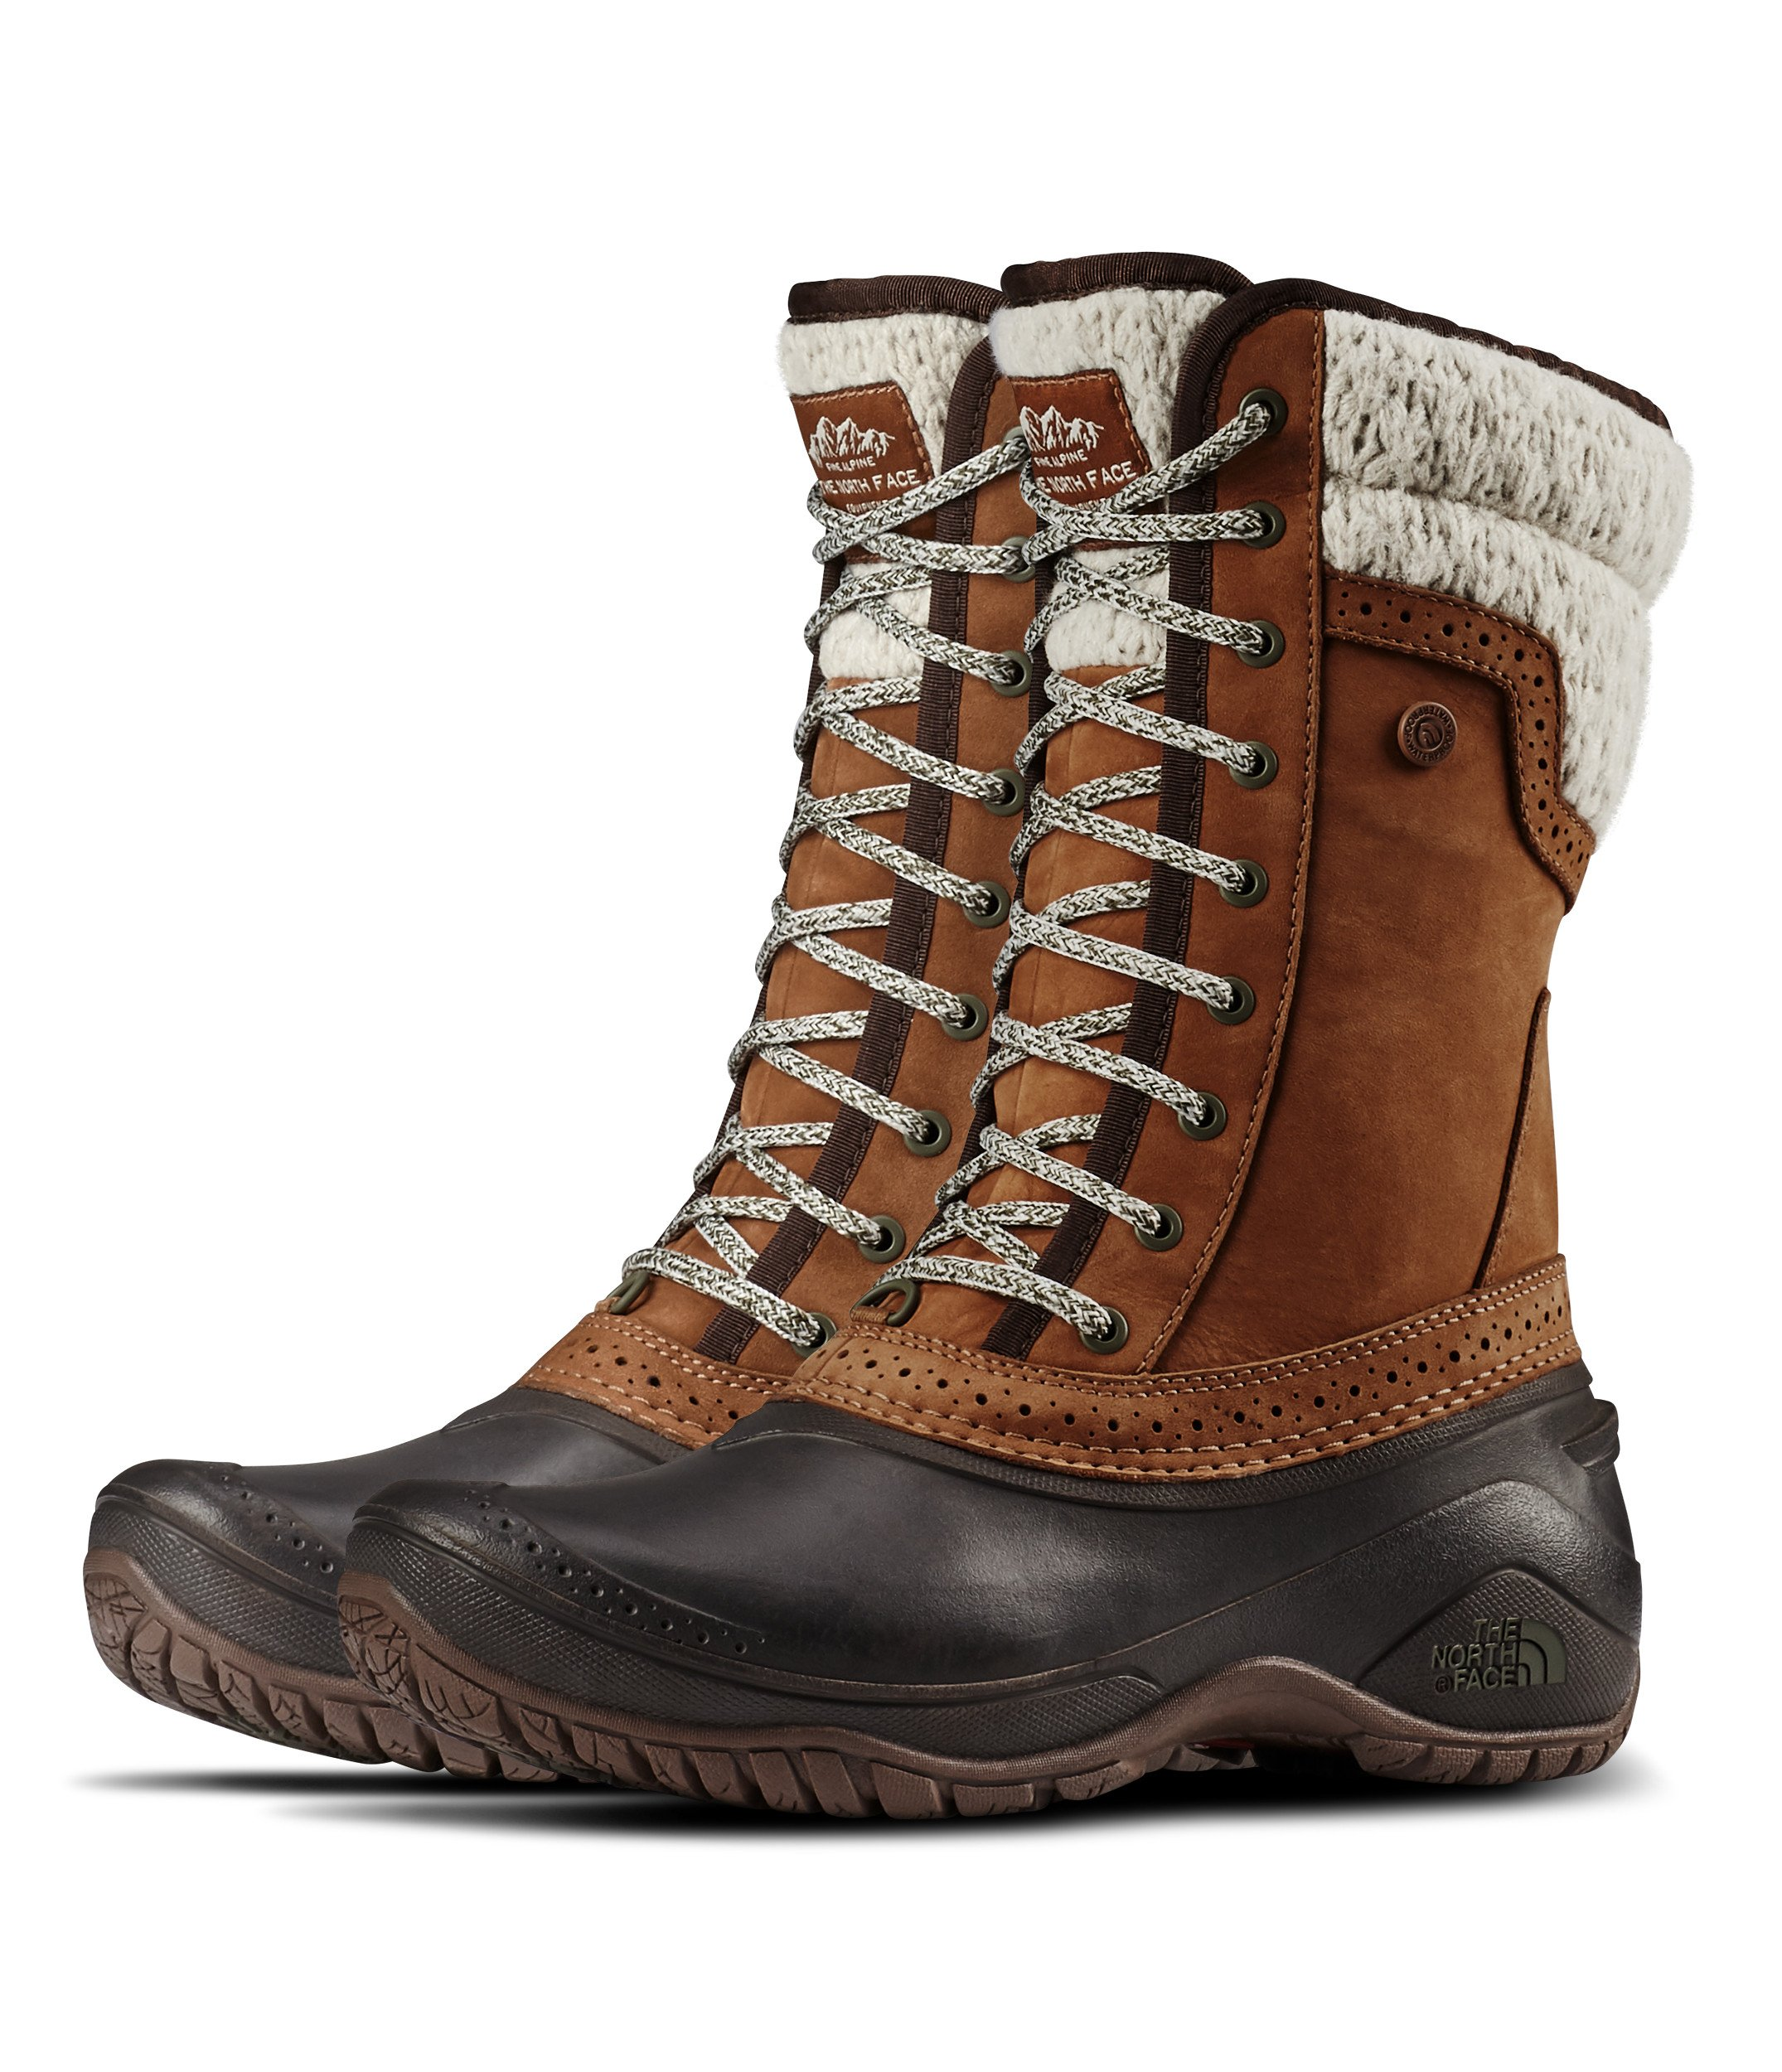 The North Face Women's Shellista II Mid - Dachshund Brown & Demitasse Brown - 8 by The North Face